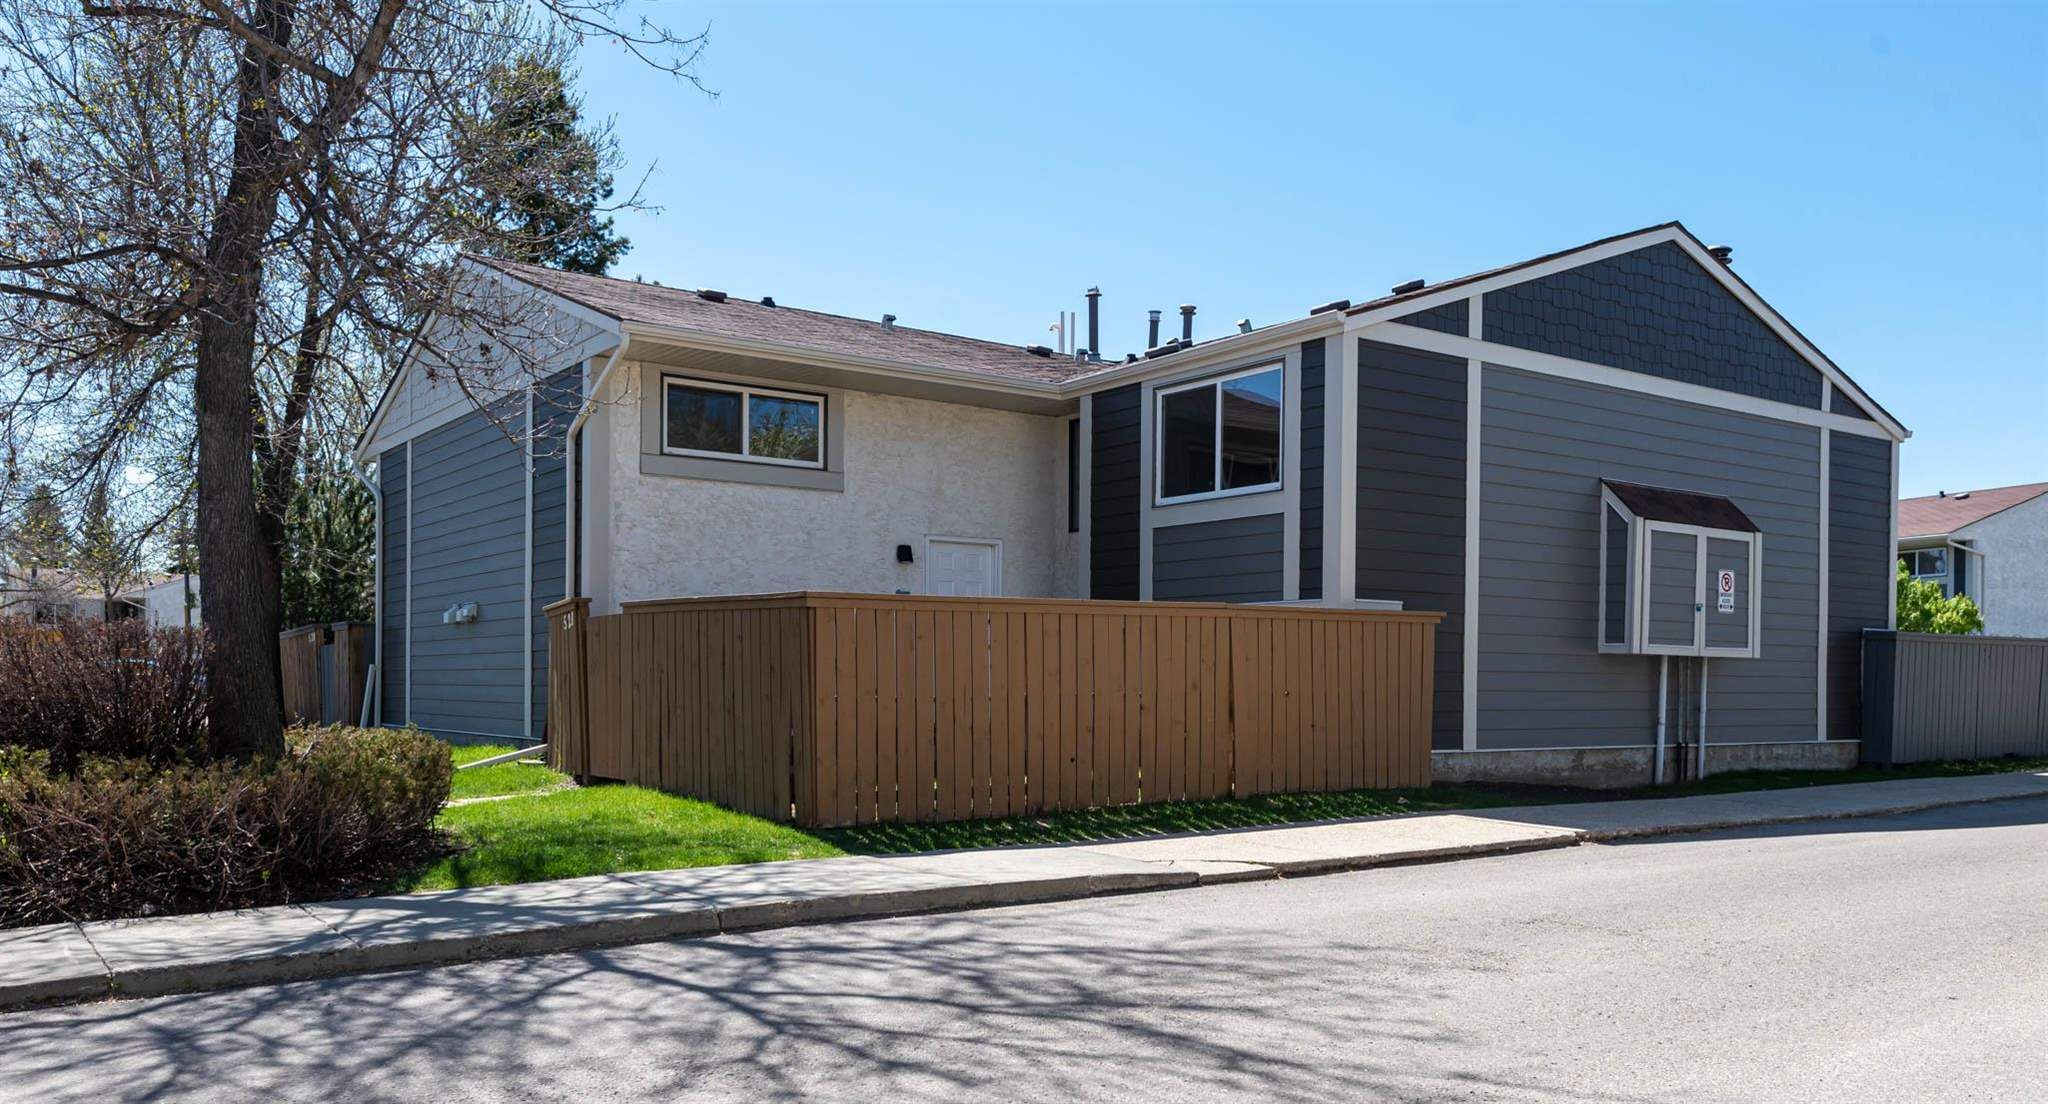 Main Photo: 521 WILLOW Court in Edmonton: Zone 20 Townhouse for sale : MLS®# E4245583